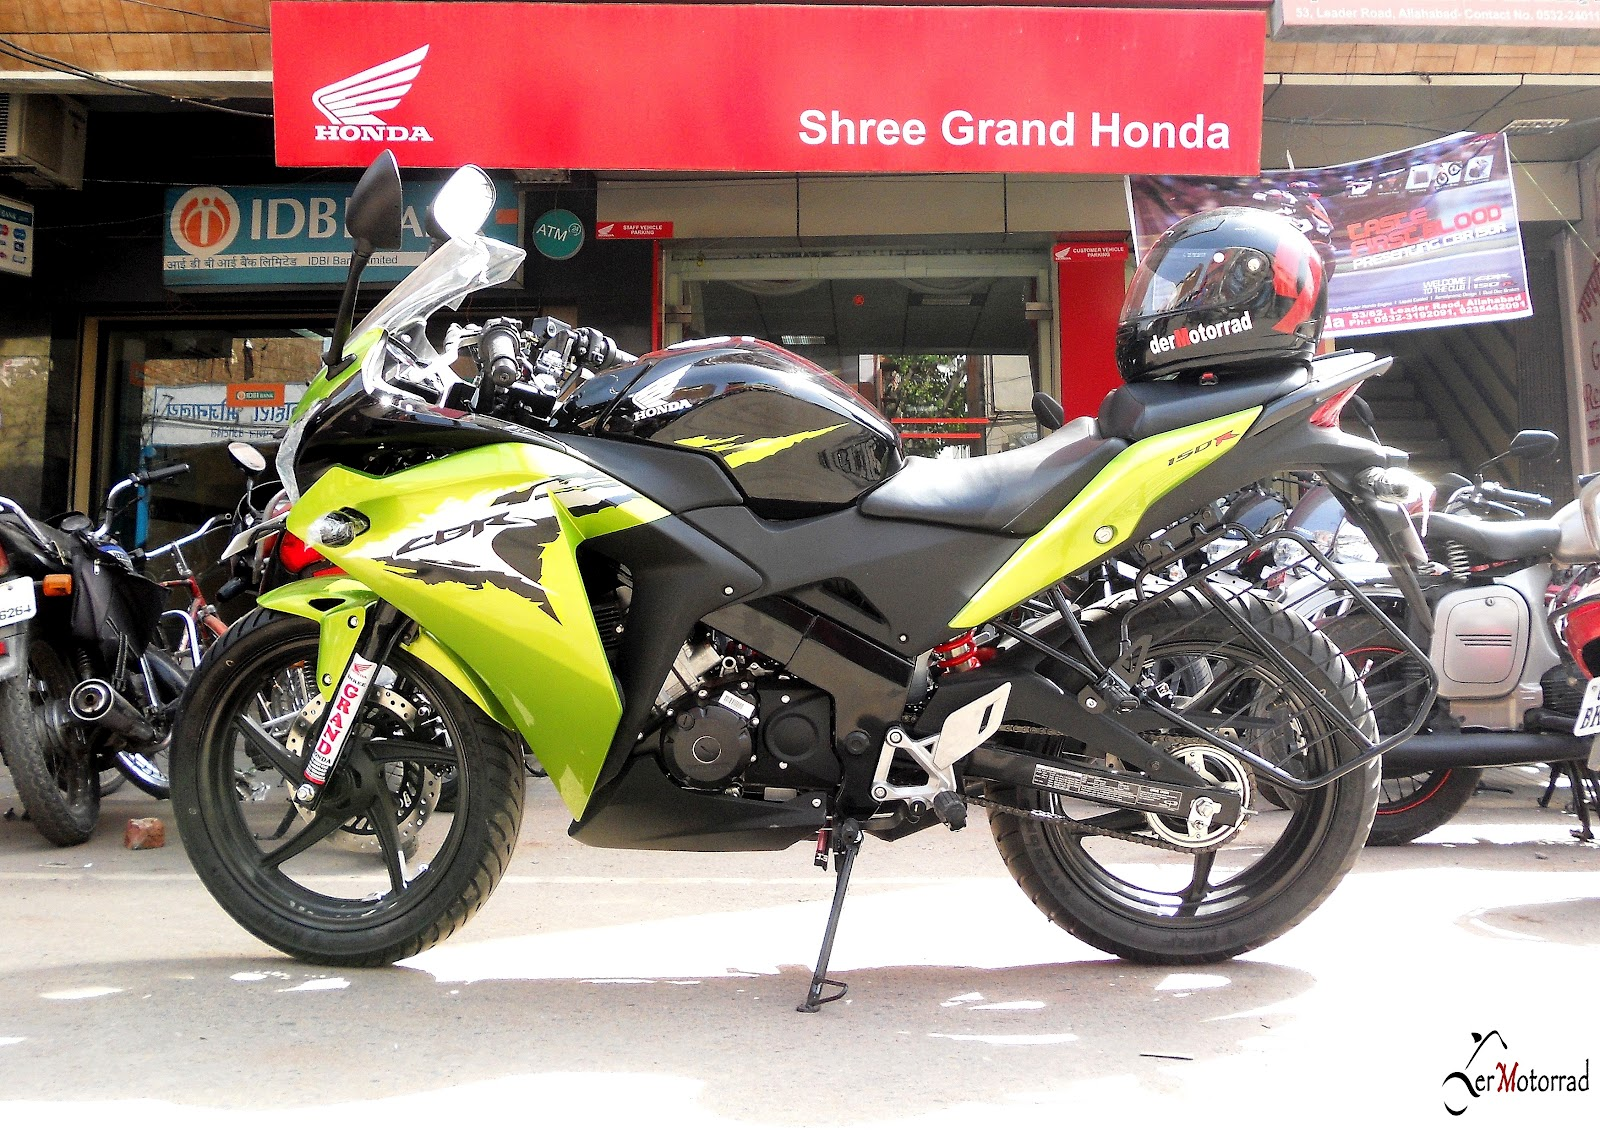 for CBR 150R is Rs 5000